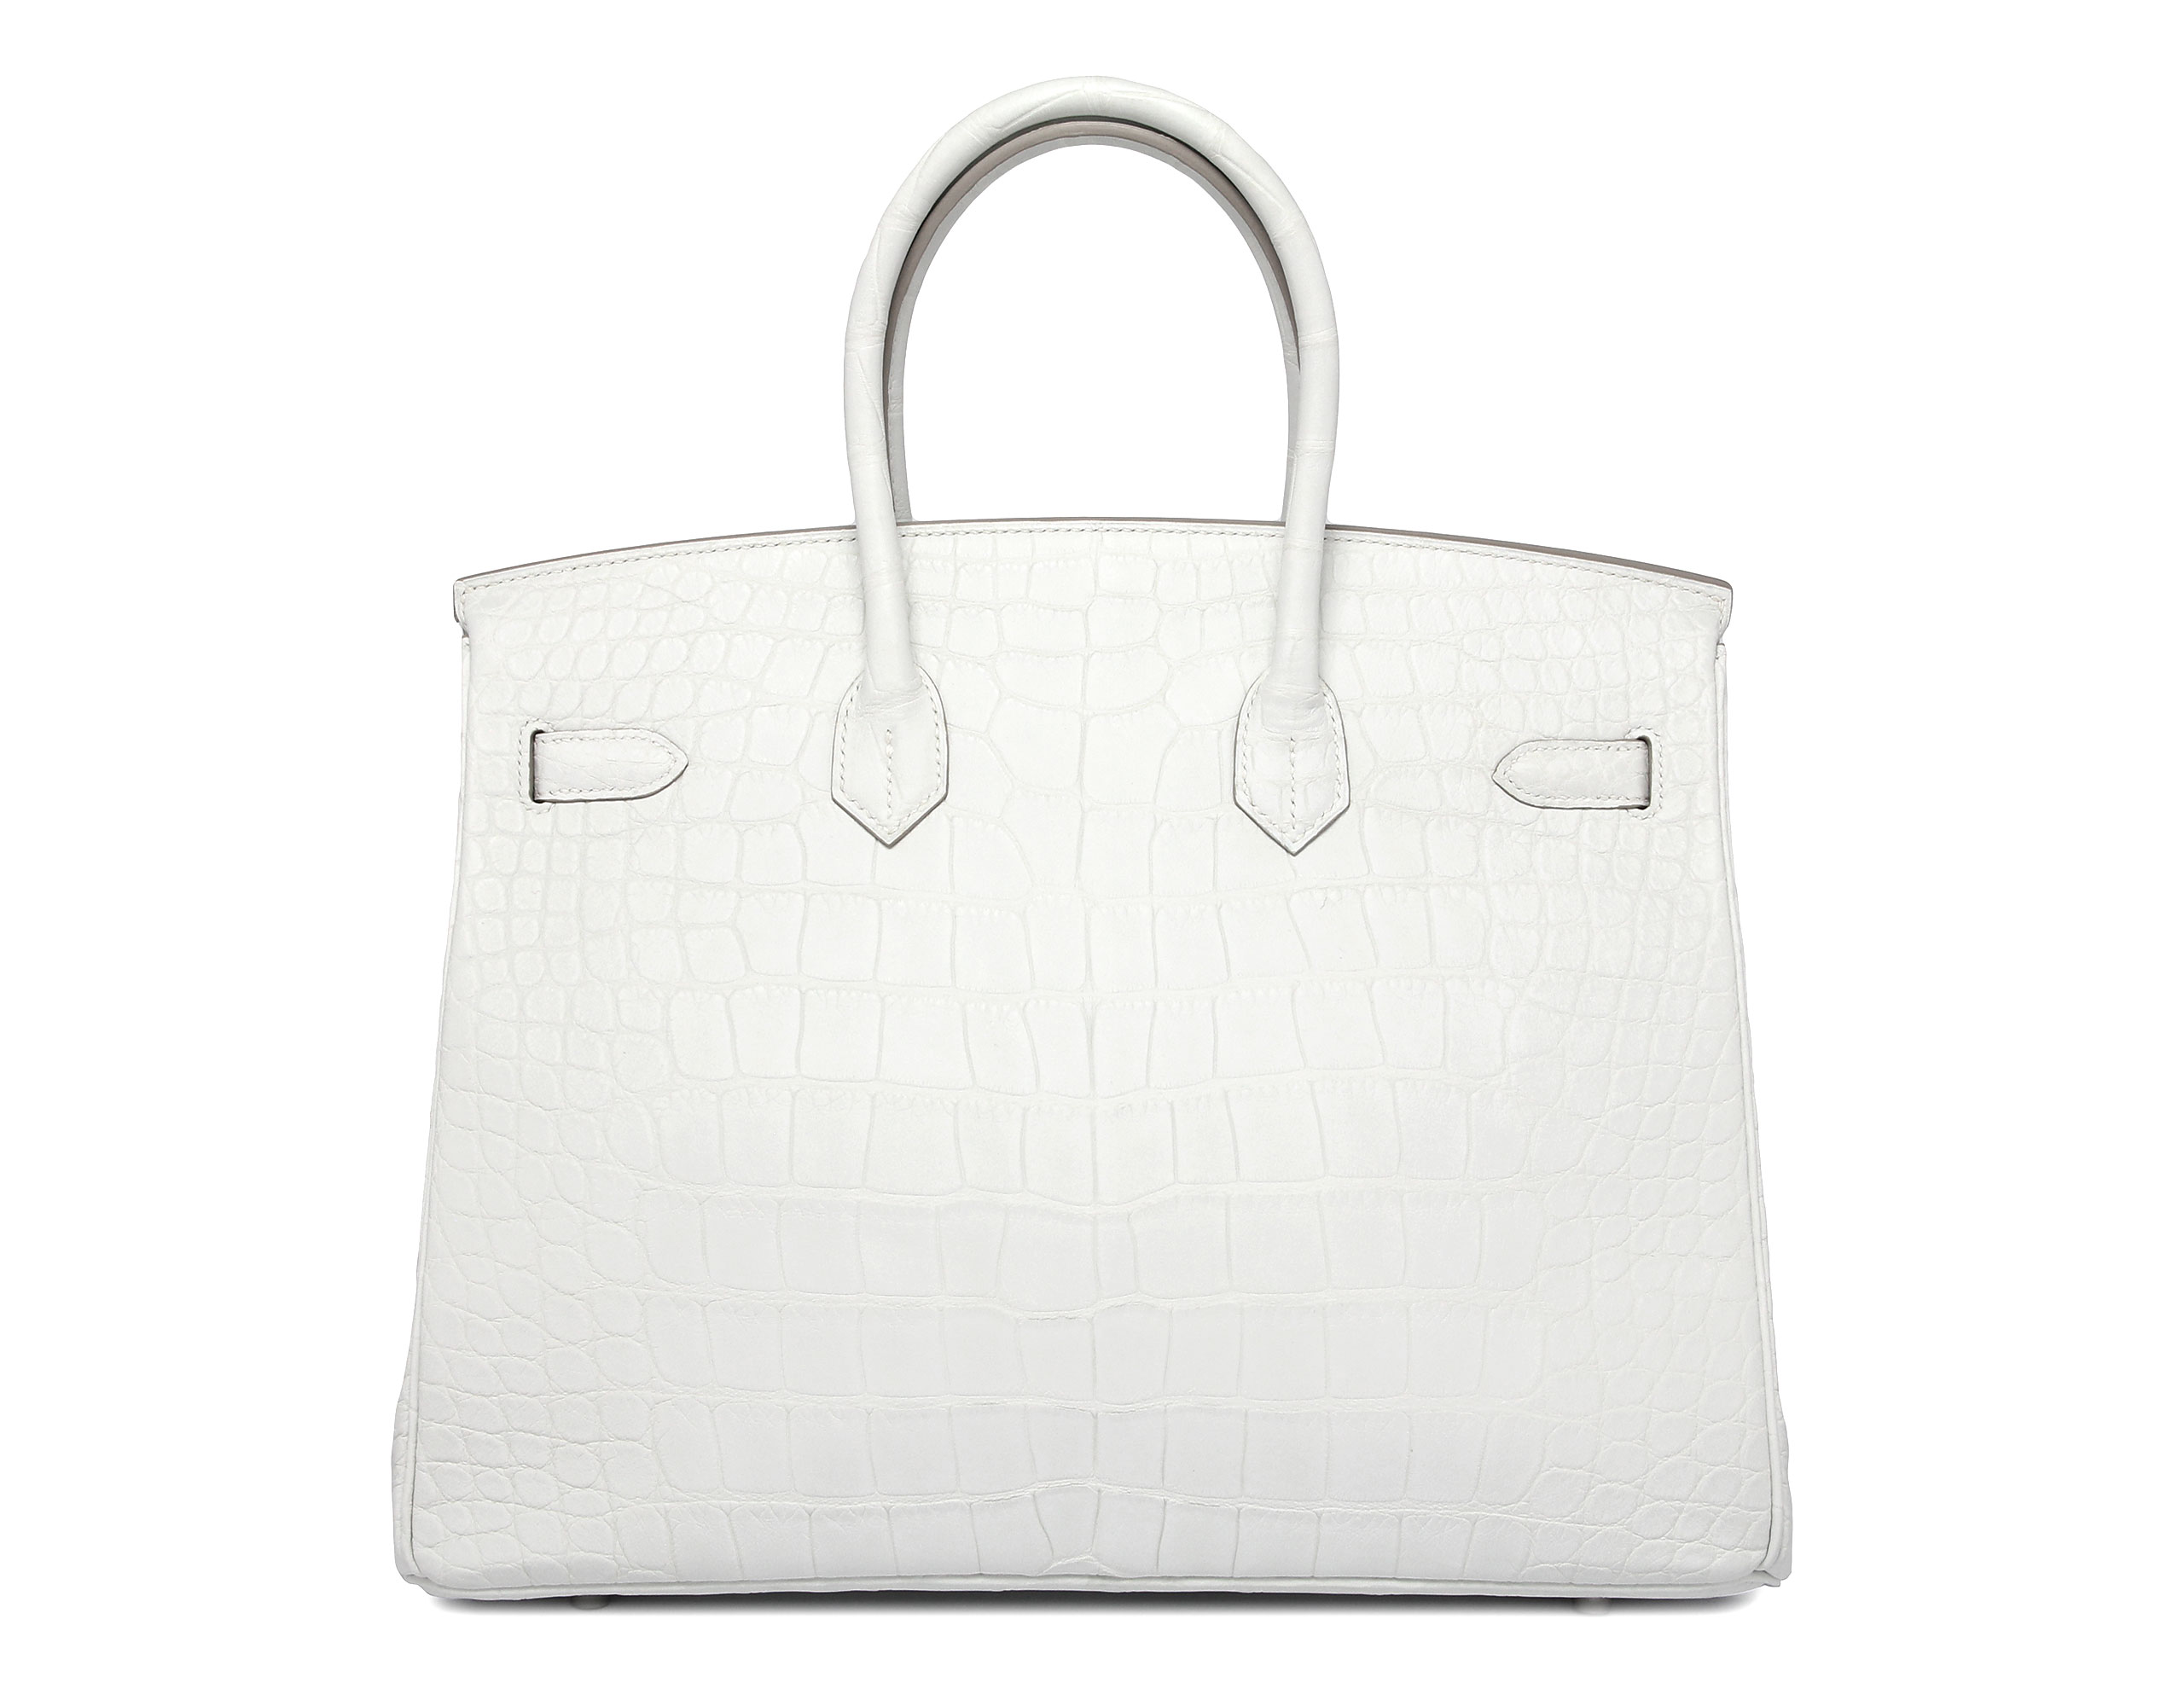 Hermes Birkin Nuage Matt Alligator with Palladium